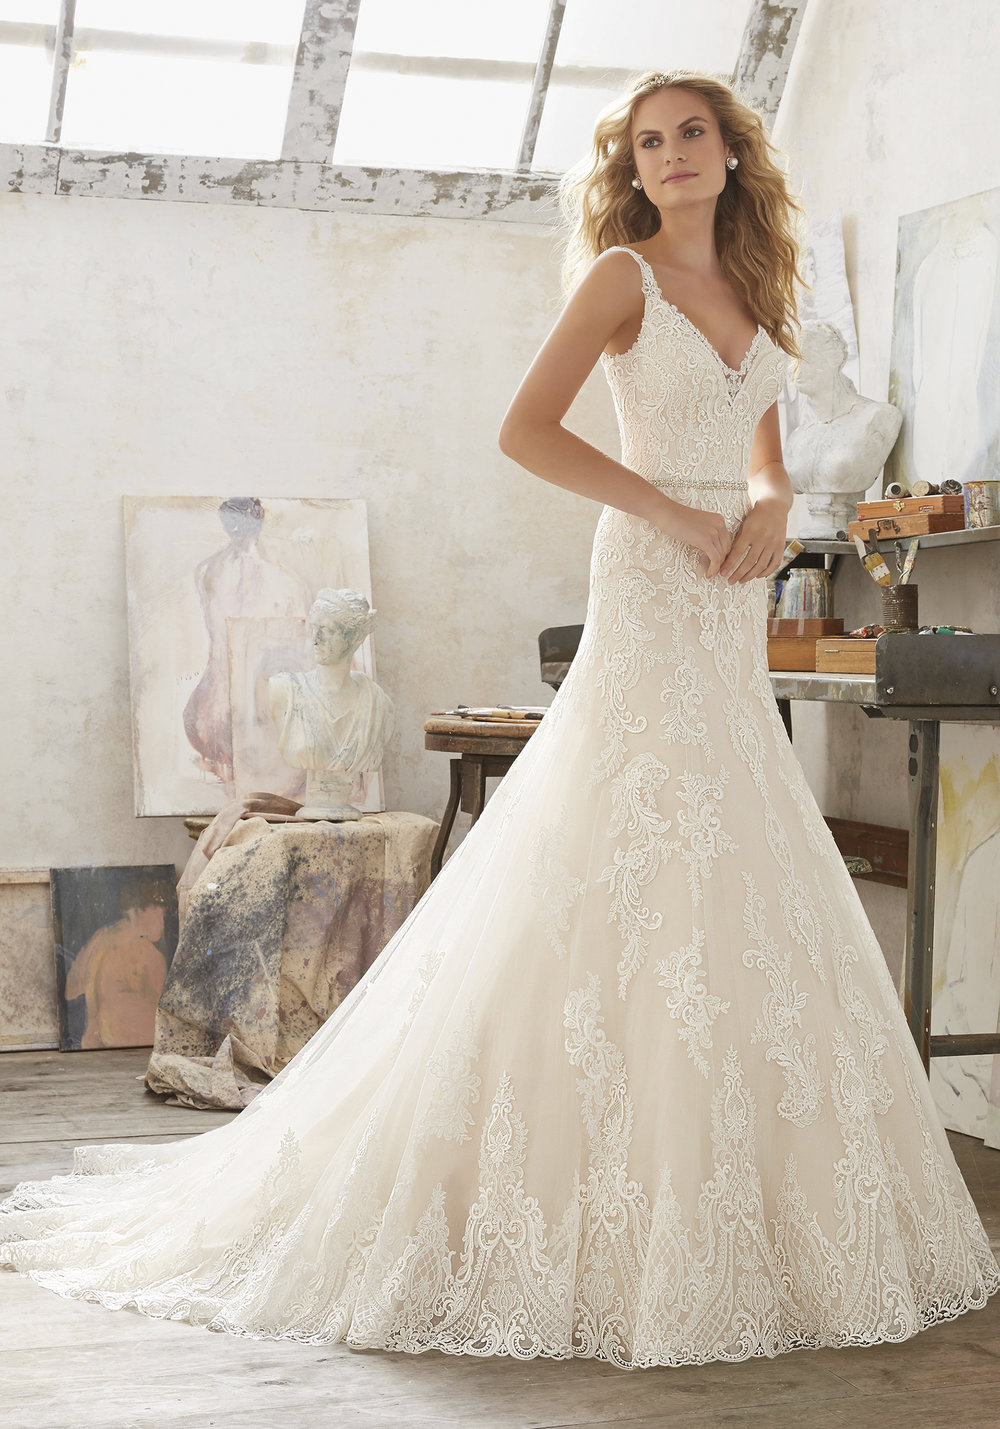 68cccb3d1 Savvi Formalwear and Bridal is Raleigh's Premier Retailer of Wedding Dresses,  Wedding Gowns, Bridal Gowns, Bridesmaid Dresses, Prom Gowns, Wedding Suits  and ...